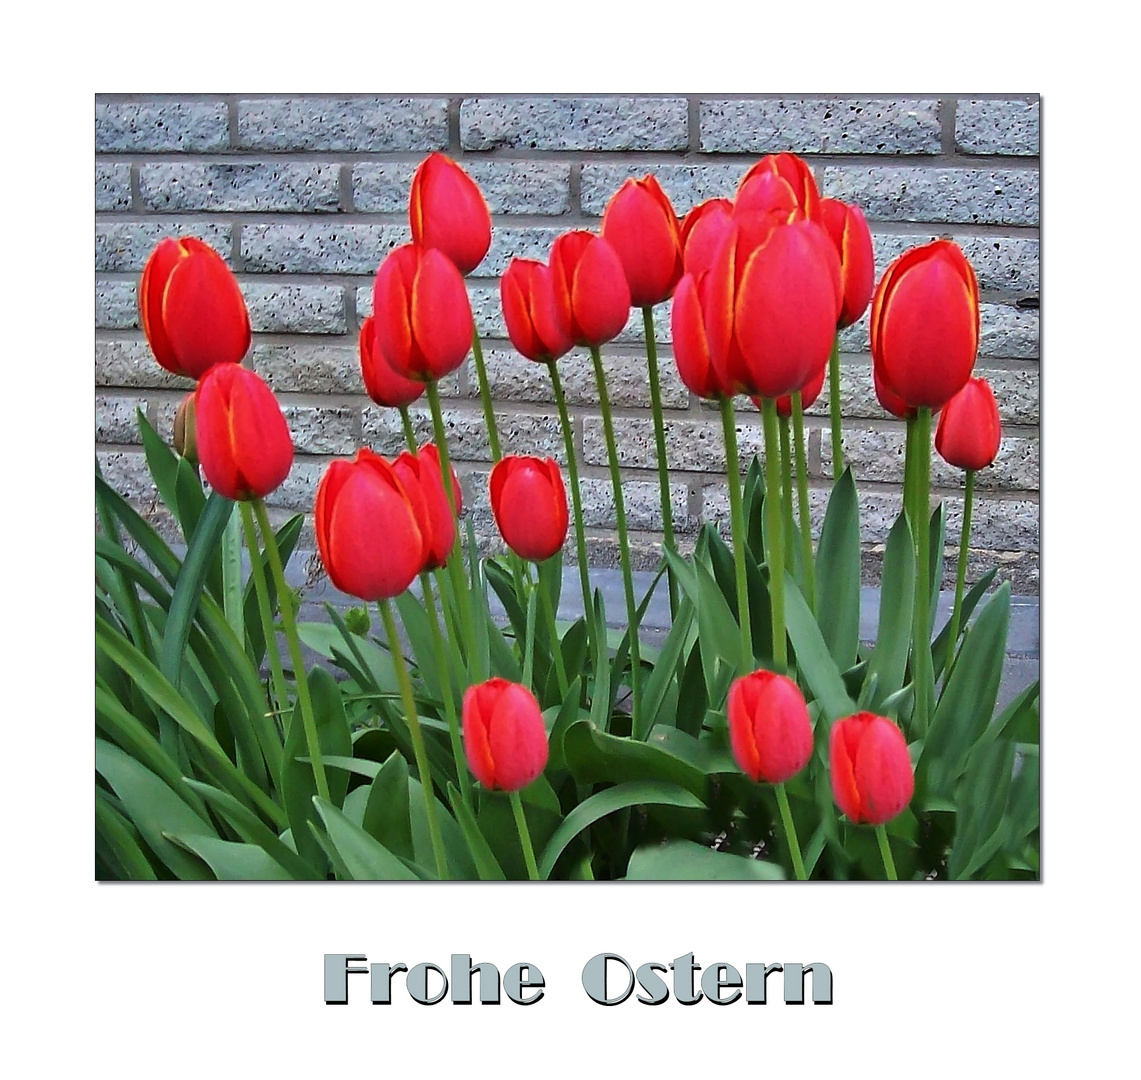 °° Frohe Ostern °°